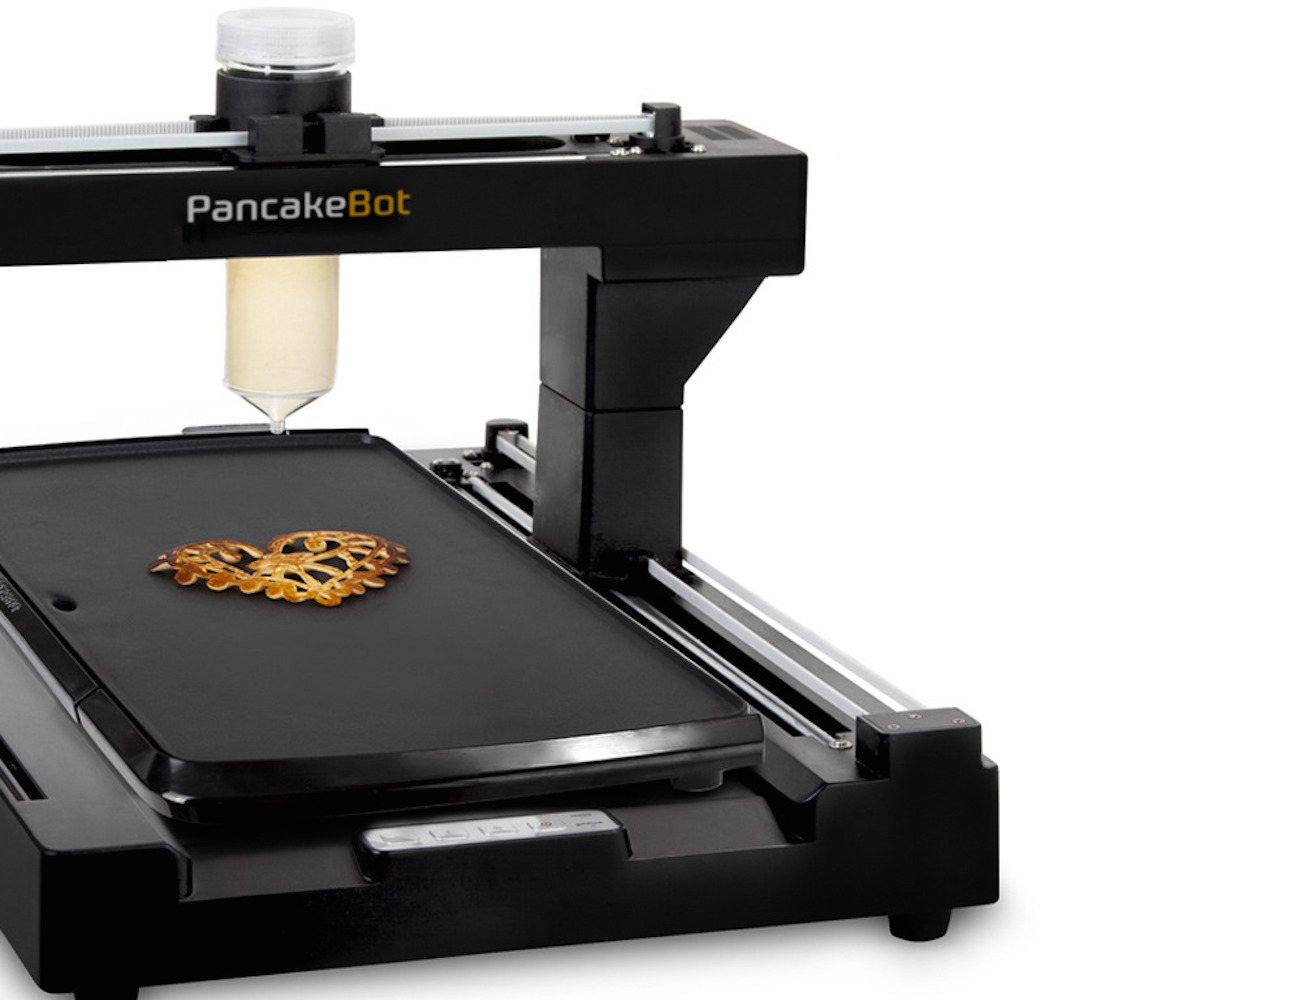 PancakeBot+%26%238211%3B+The+World%26%238217%3Bs+First+Pancake+Printer